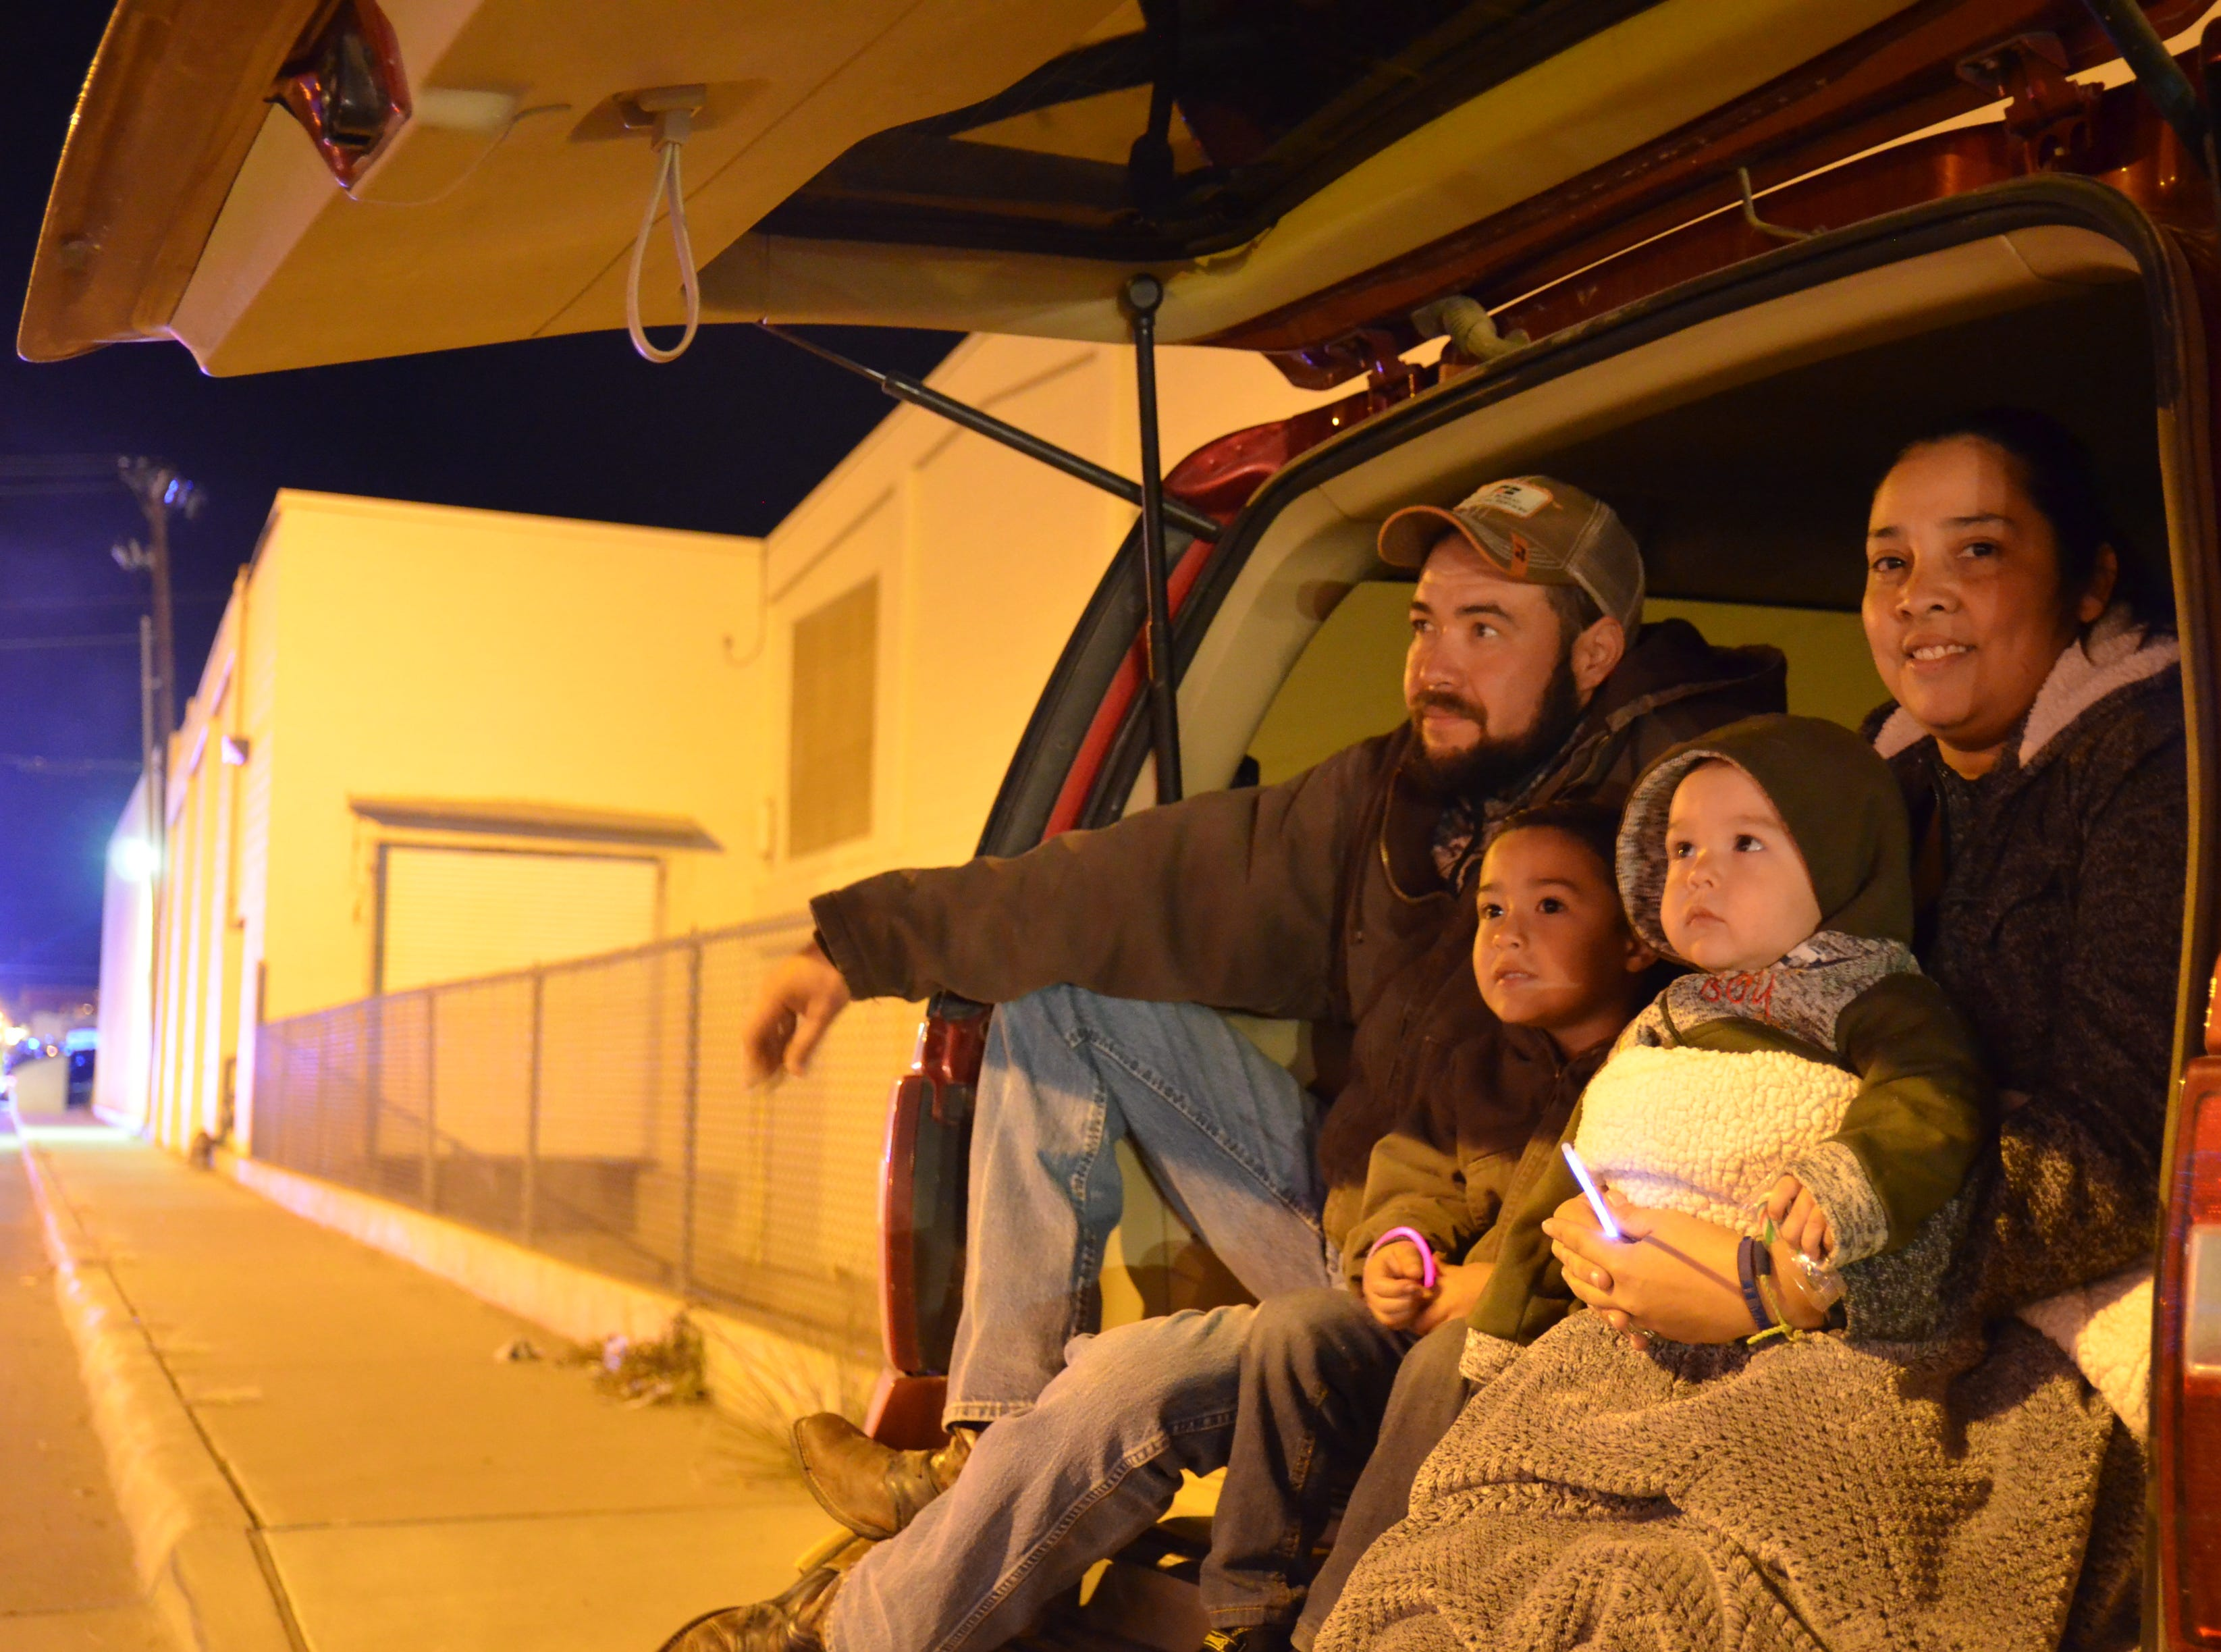 The Piñon family view the lighted Christmas parade from the back of their car.